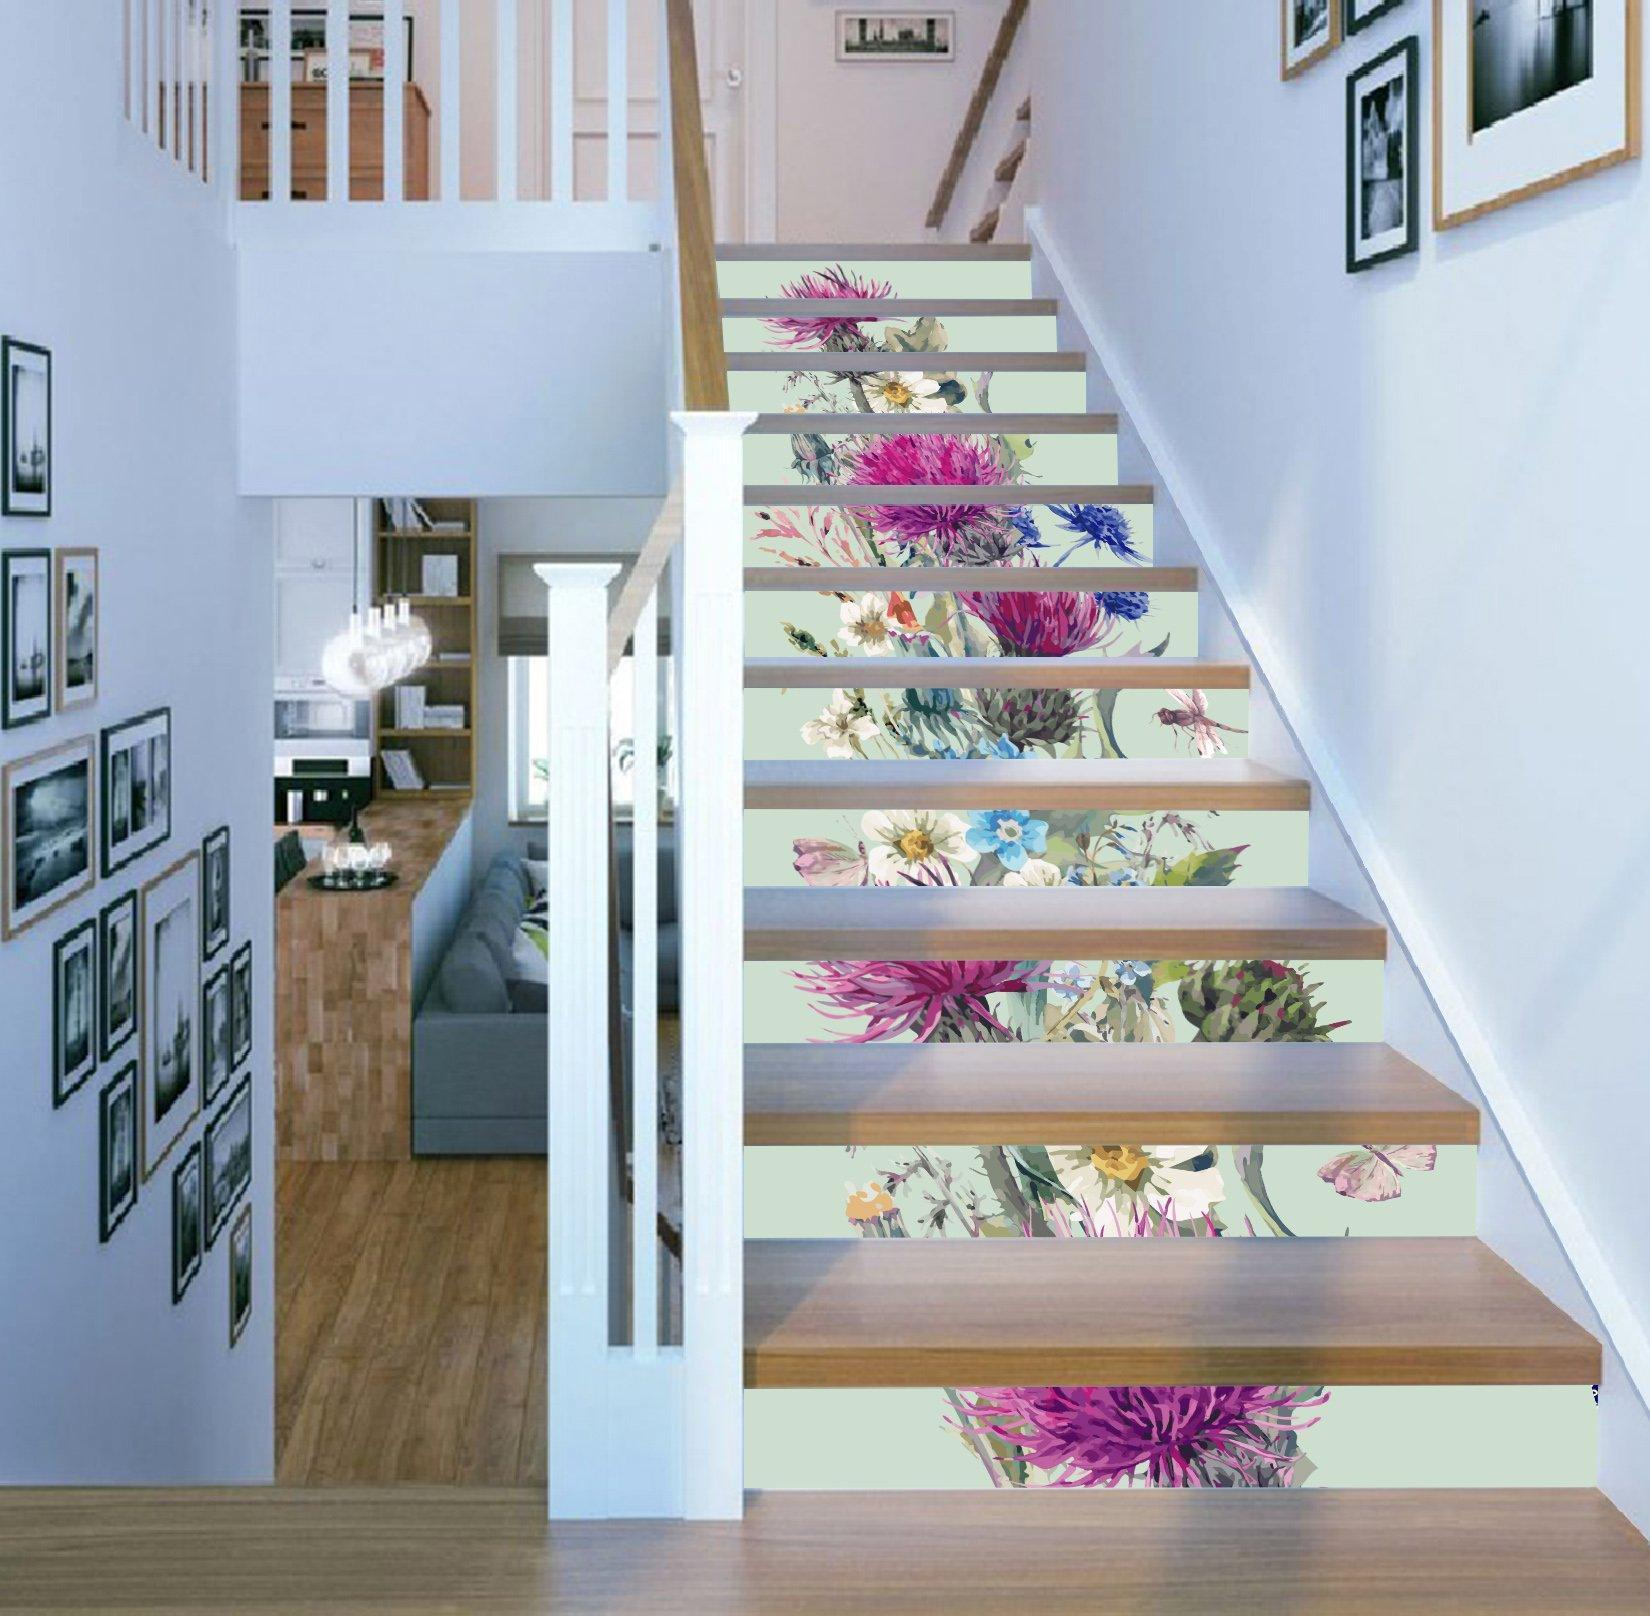 3D Flowers 473 Stair Risers Wallpaper AJ Wallpaper